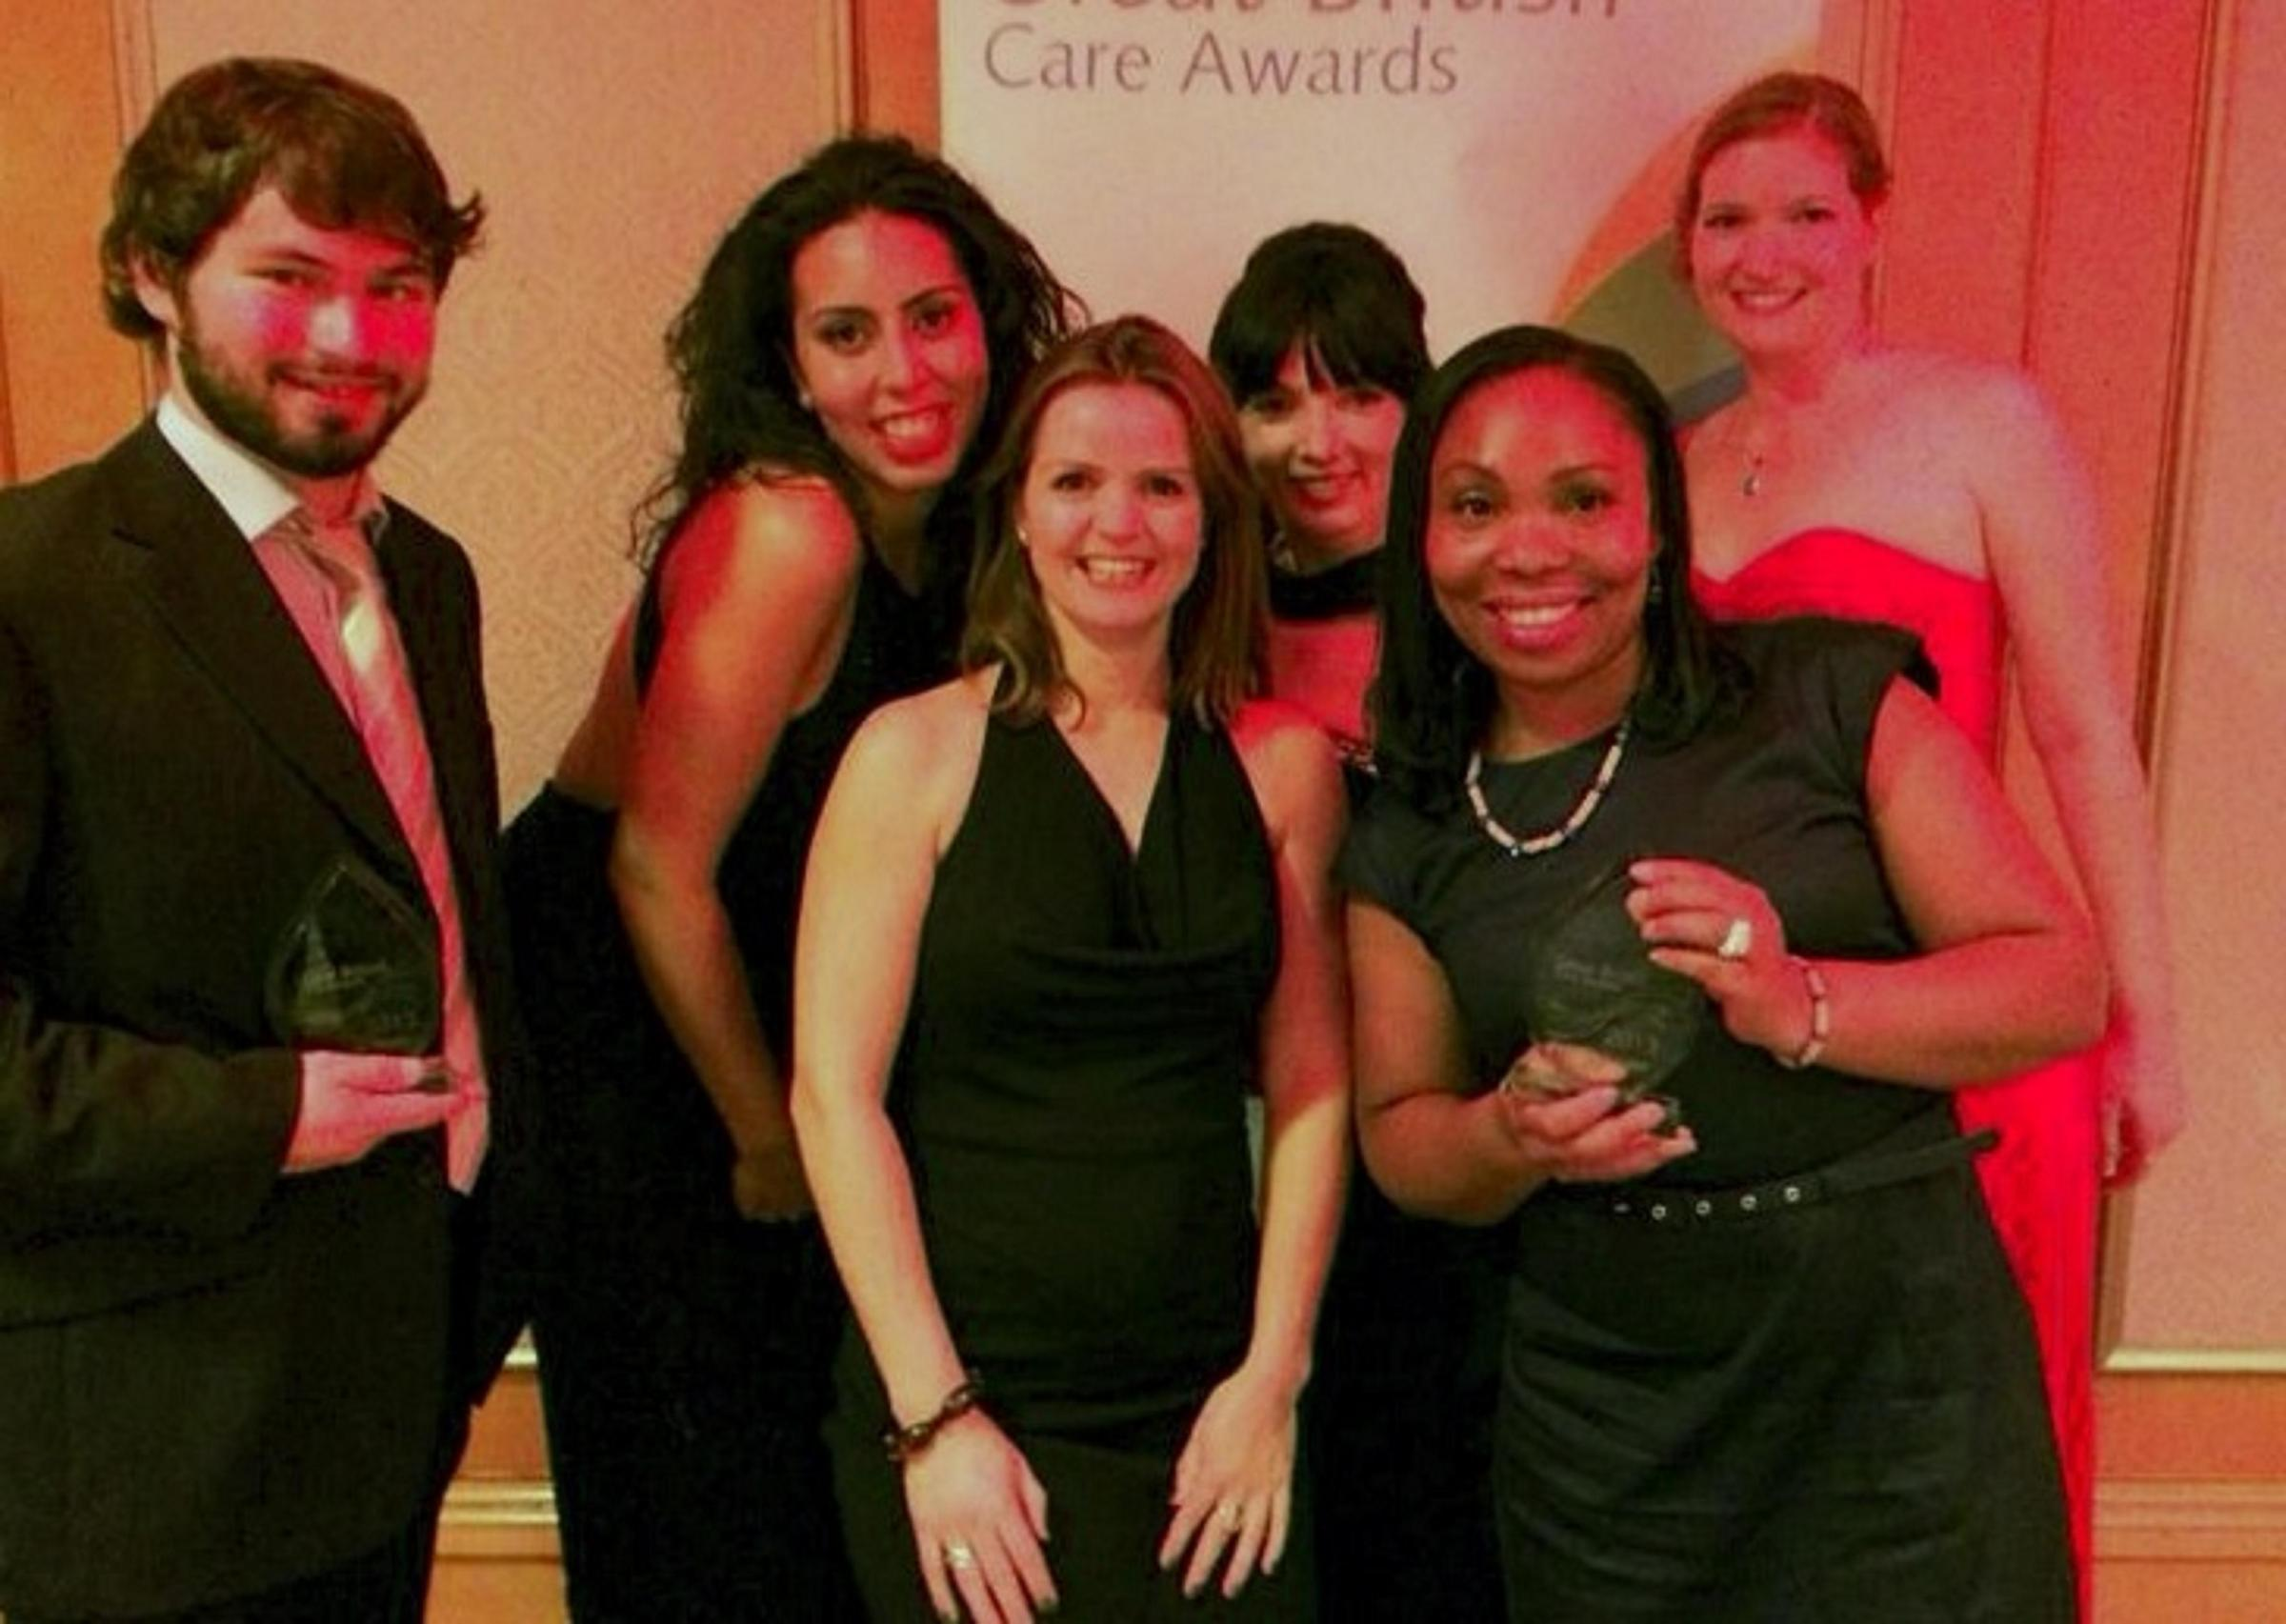 Managing Care nominees